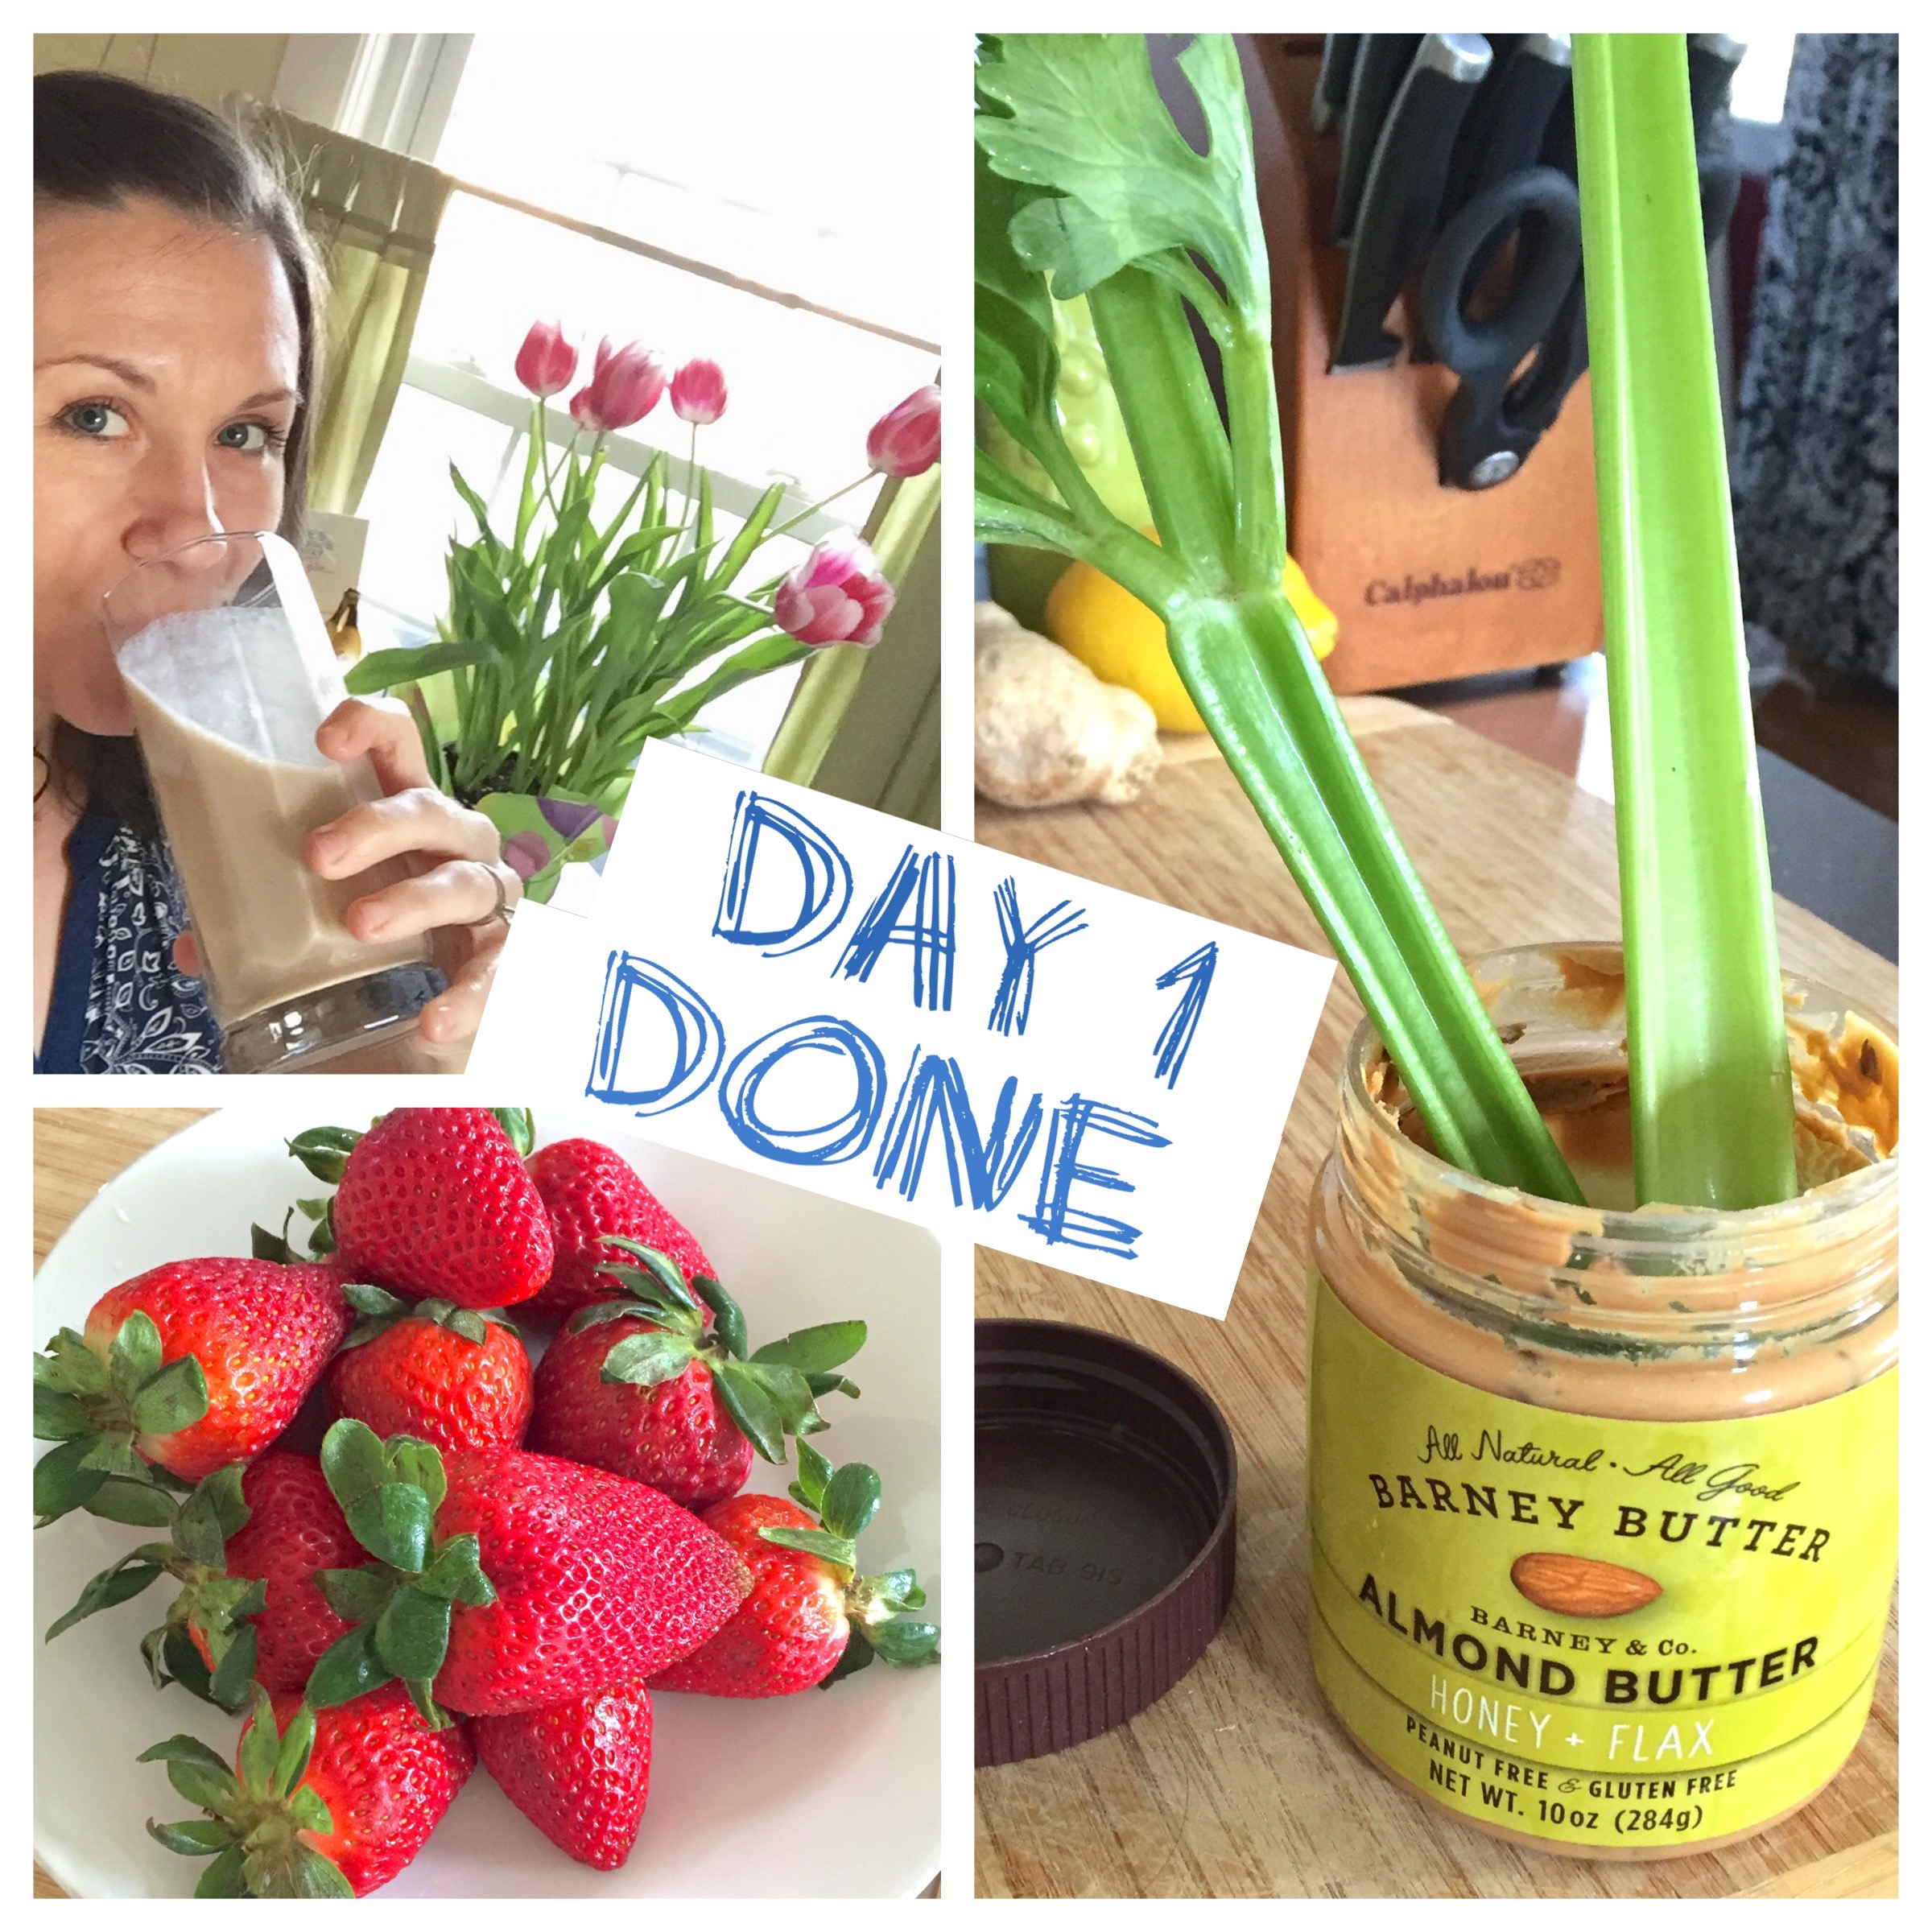 I ate SO MANY strawberries on Day 1. And almond butter. A fav!